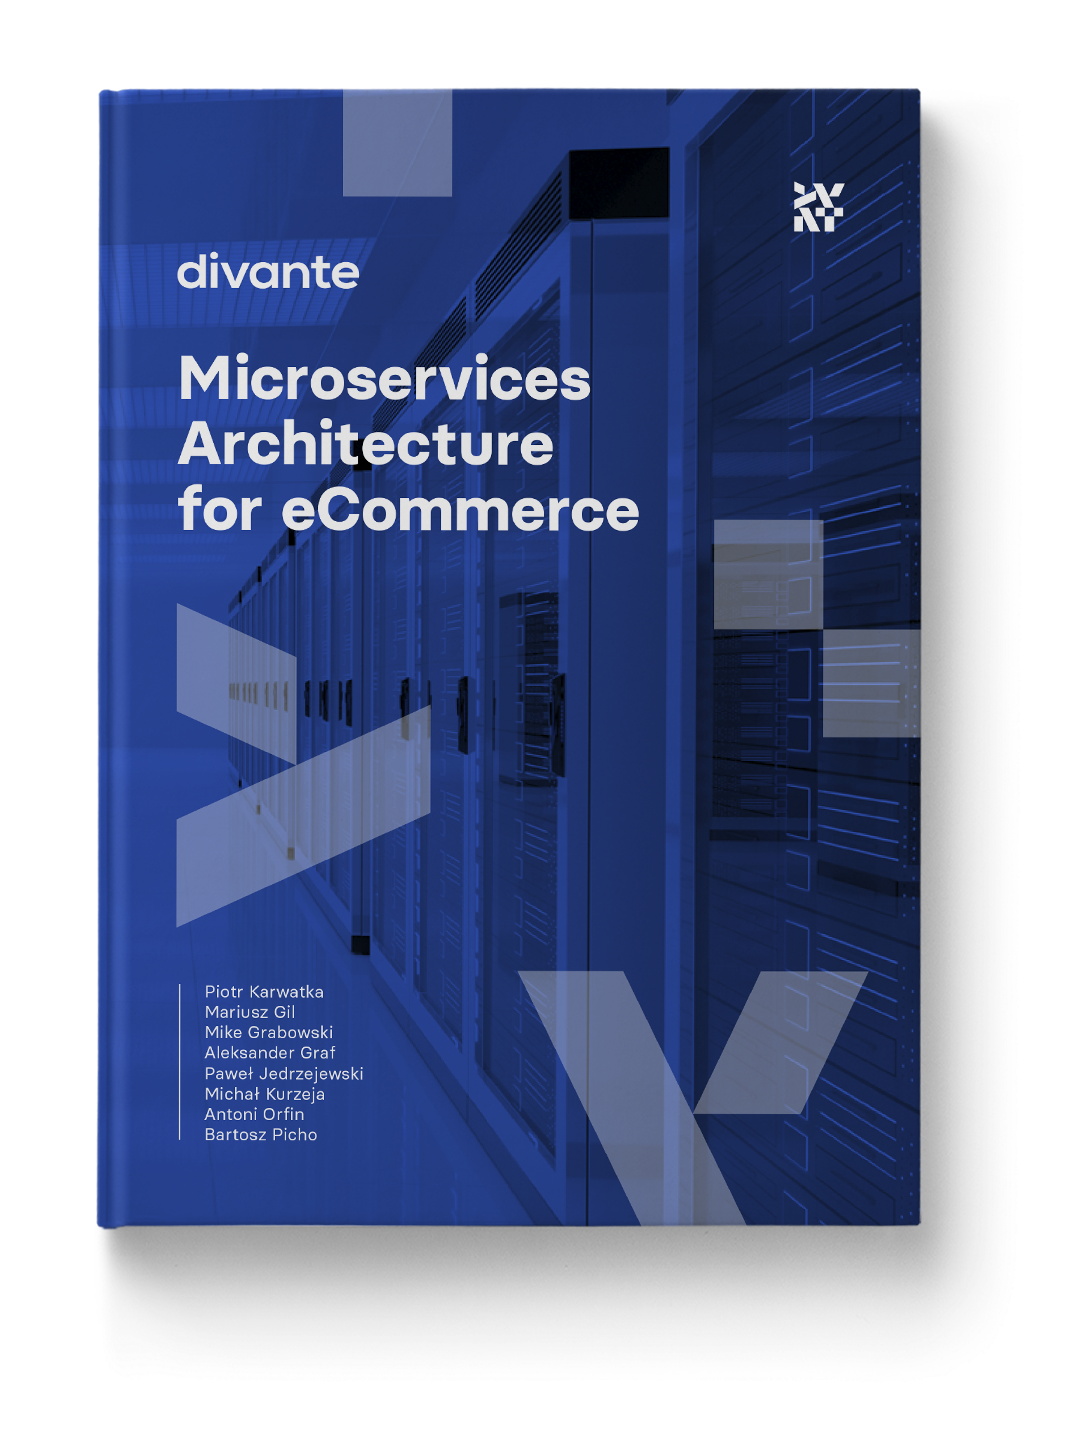 Github Divanteltd Microservices Book Microservices Architecture For Ecommerce Is An Open Source Book On Microservices And Headless Ecommerce Feel Invited To Contribute Read Online Or Download A Pdf